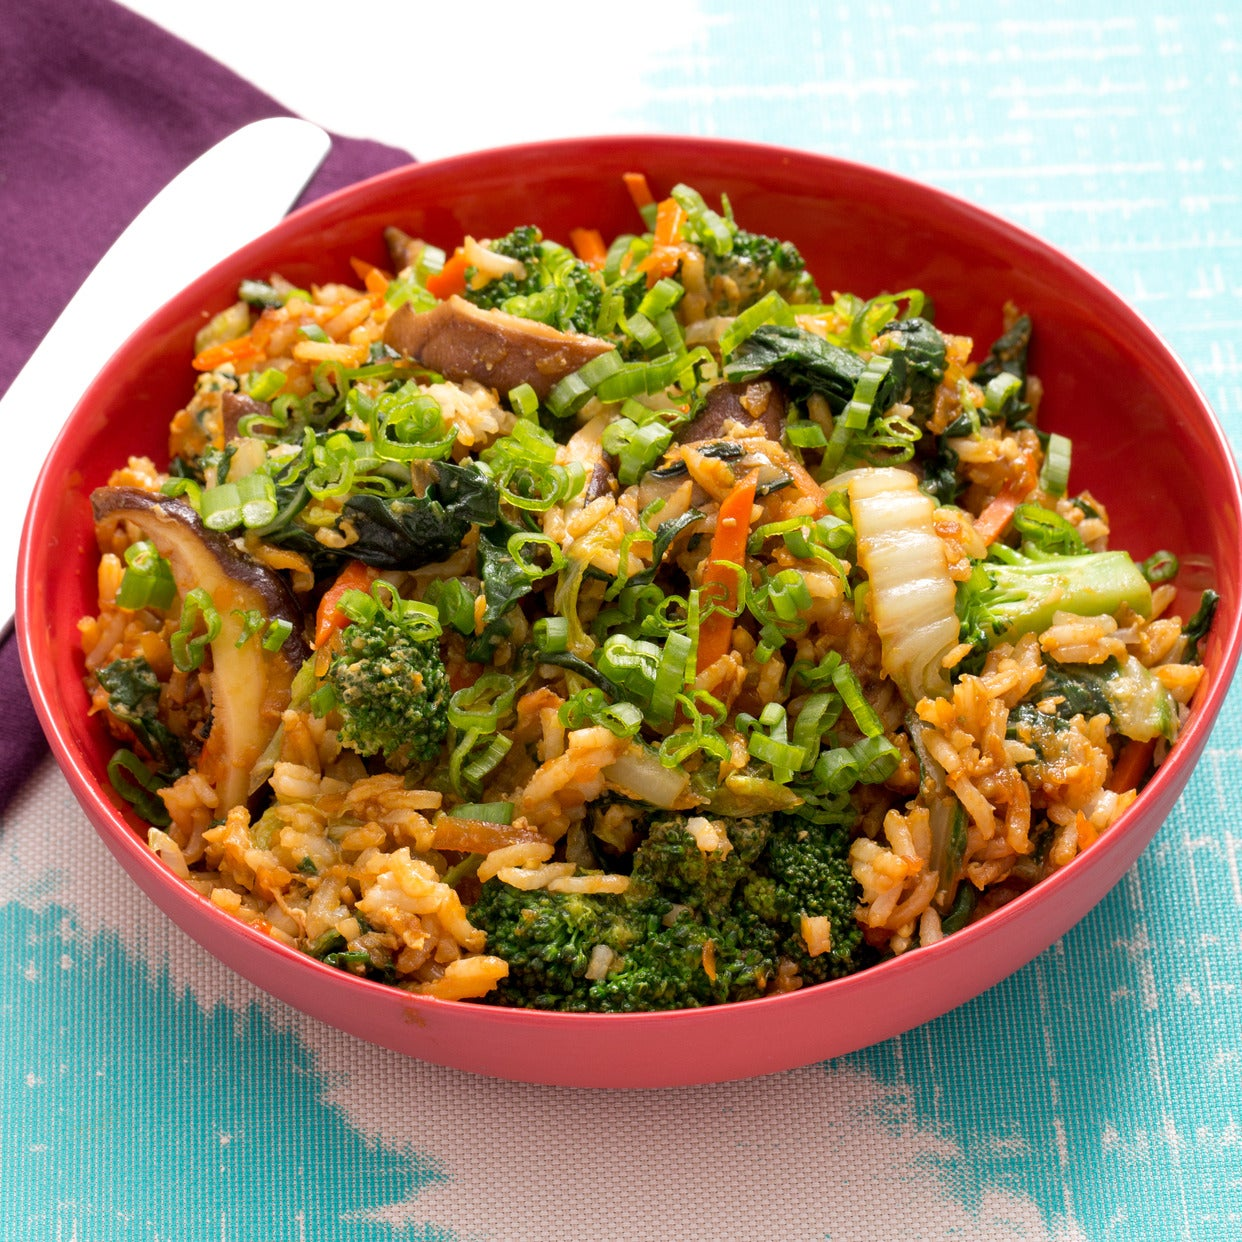 Cabbage & Chard Fried Rice with Sweet Potato & Shiitake Mushrooms